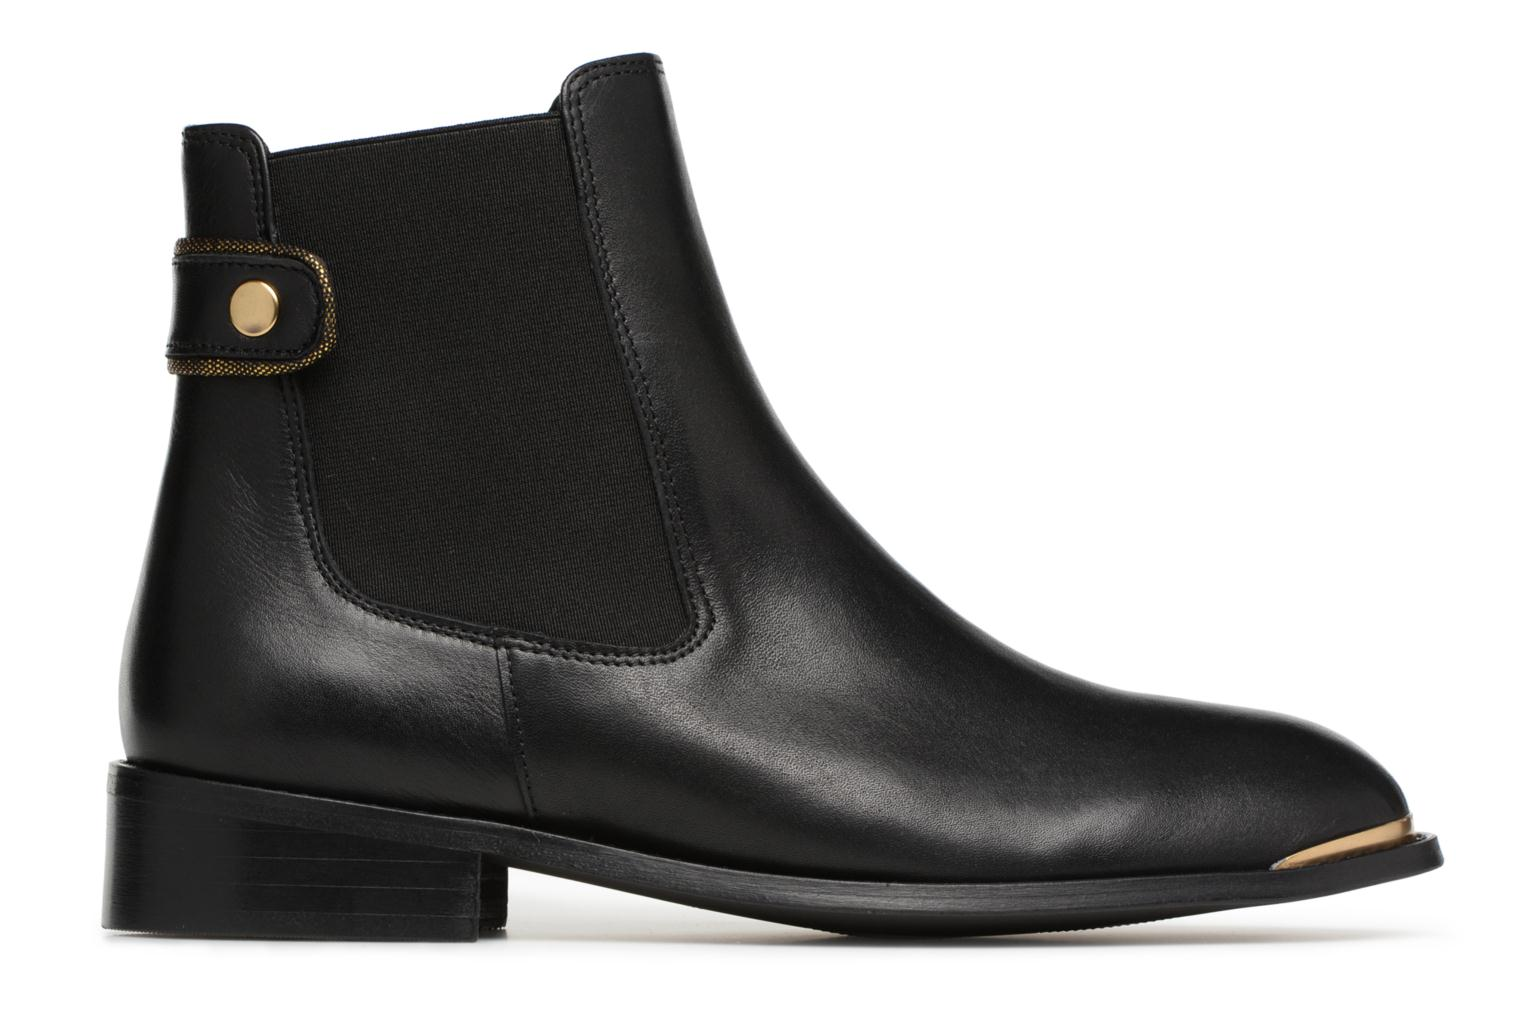 Marques Chaussure femme Made by SARENZA femme Busy Girl Bottines Plates #3 Cuir Lisse Noir